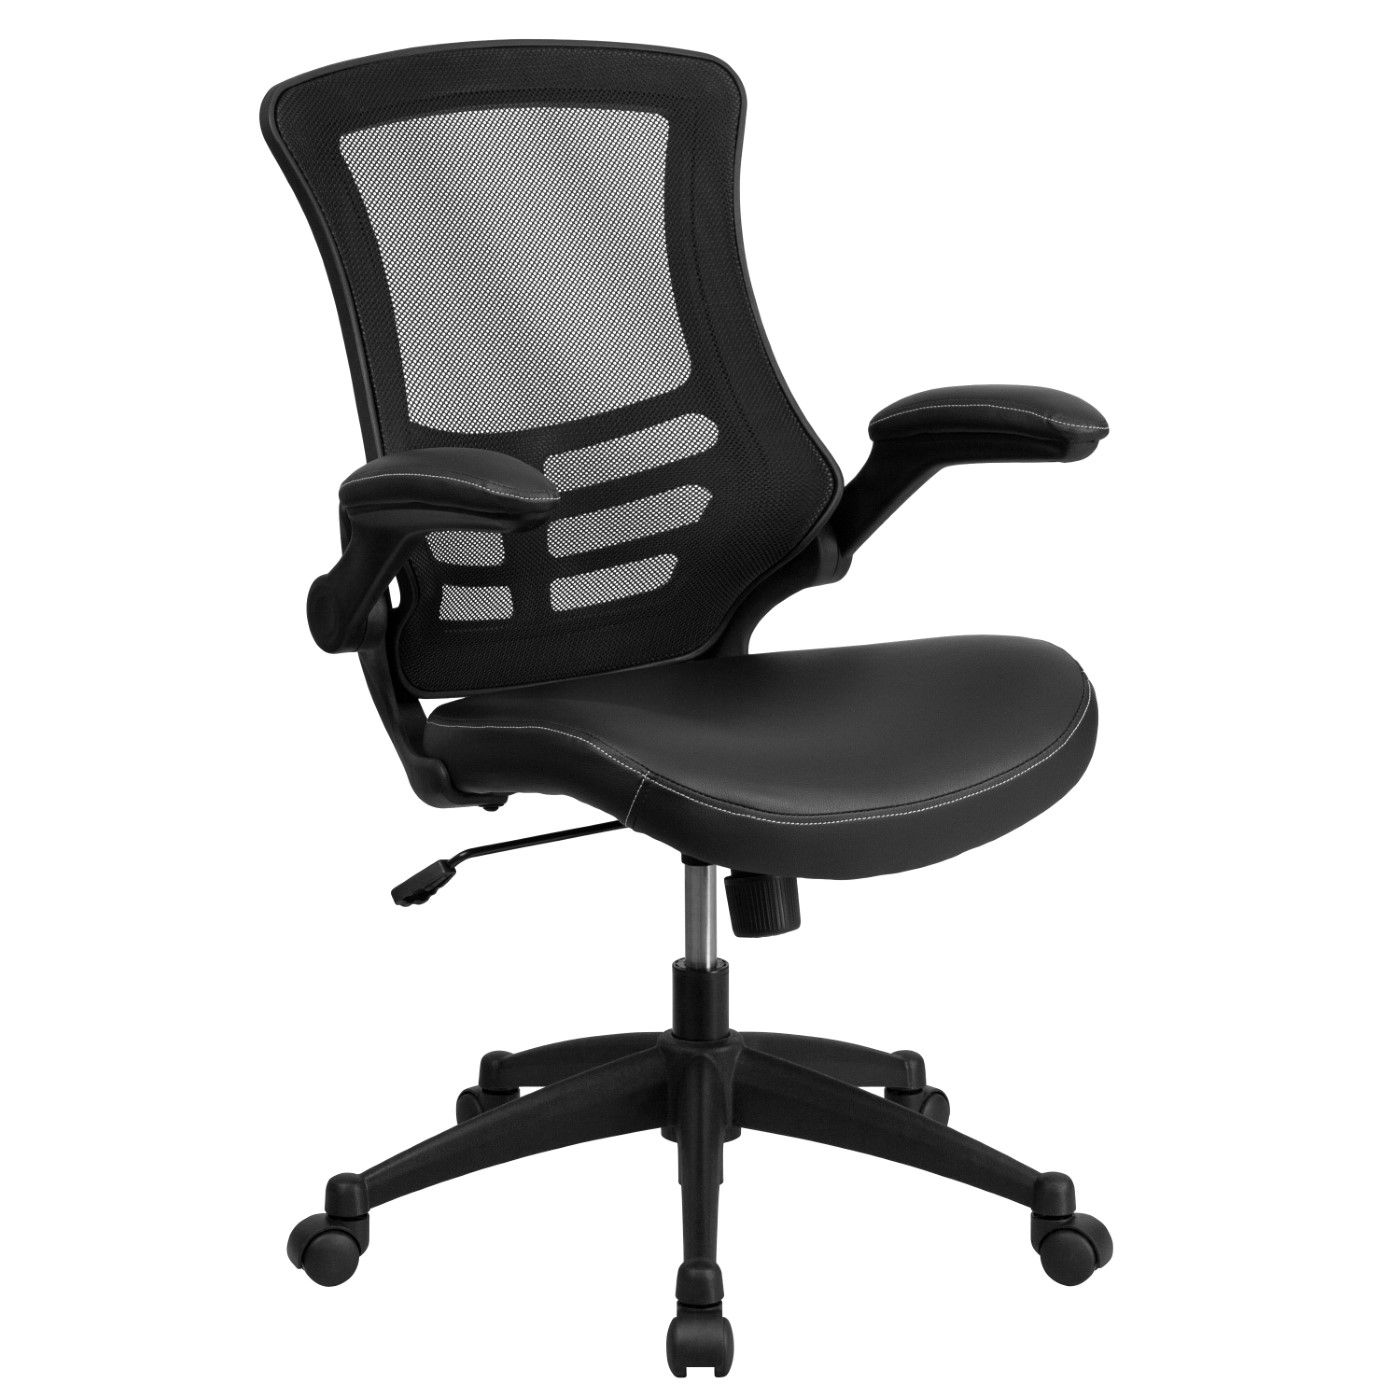 Desk Chair with Wheels|Swivel Chair with Mid-Back Black Mesh and LeatherSoft Seat for Home Office and Desk